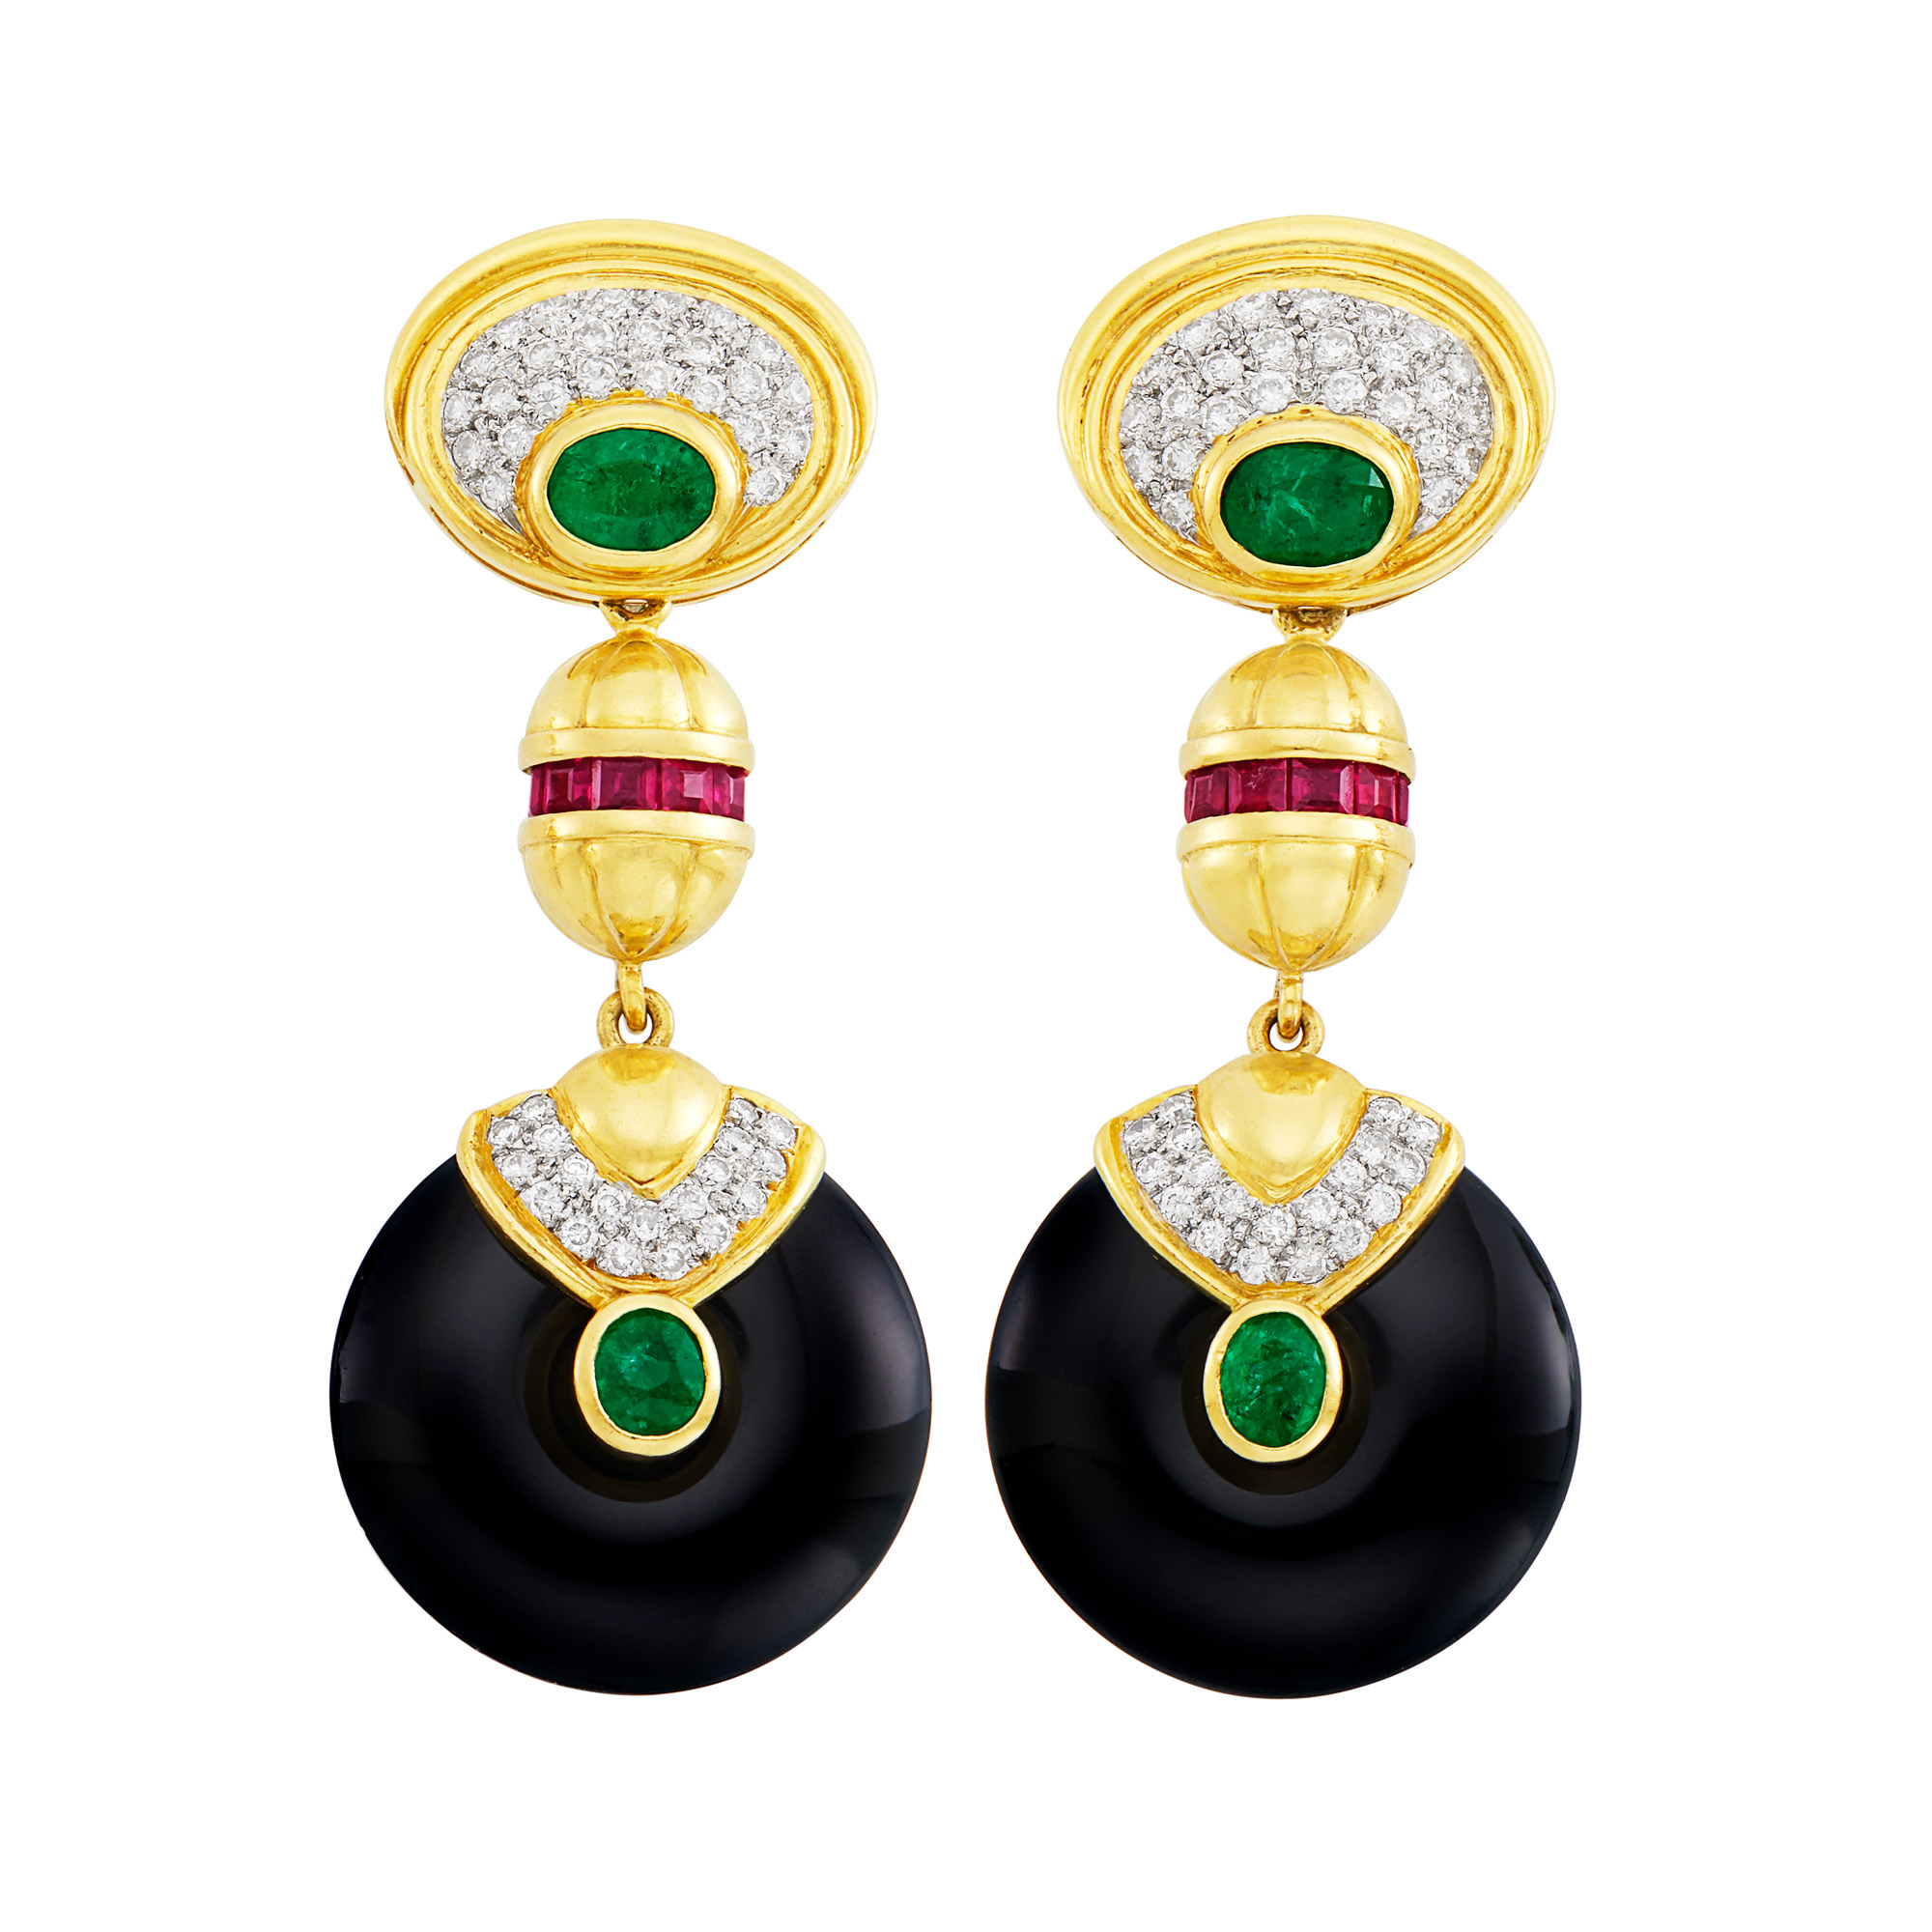 Lot image - Pair of Gold, Black Onyx, Diamond, Emerald and Ruby Pendant-Earclips with Interchangeable Pendants